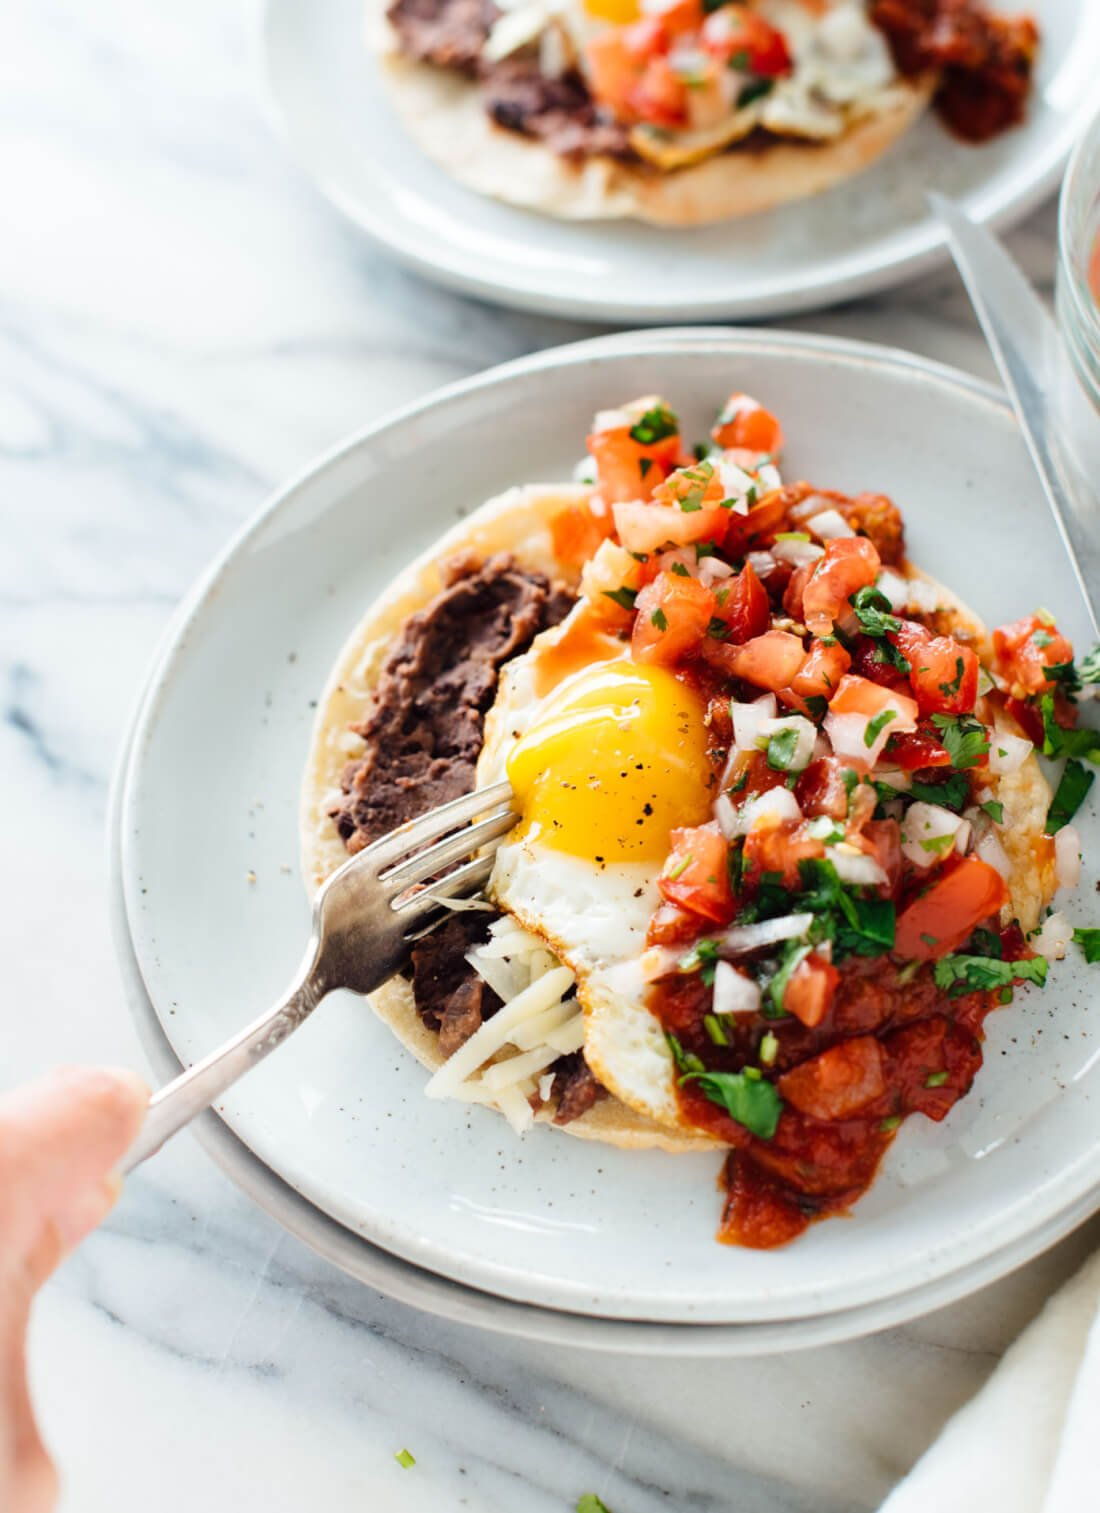 These huevos rancheros are the best! They're a healthy vegetarian recipe that you can make any time of day—breakfast, brunch, lunch or dinner!